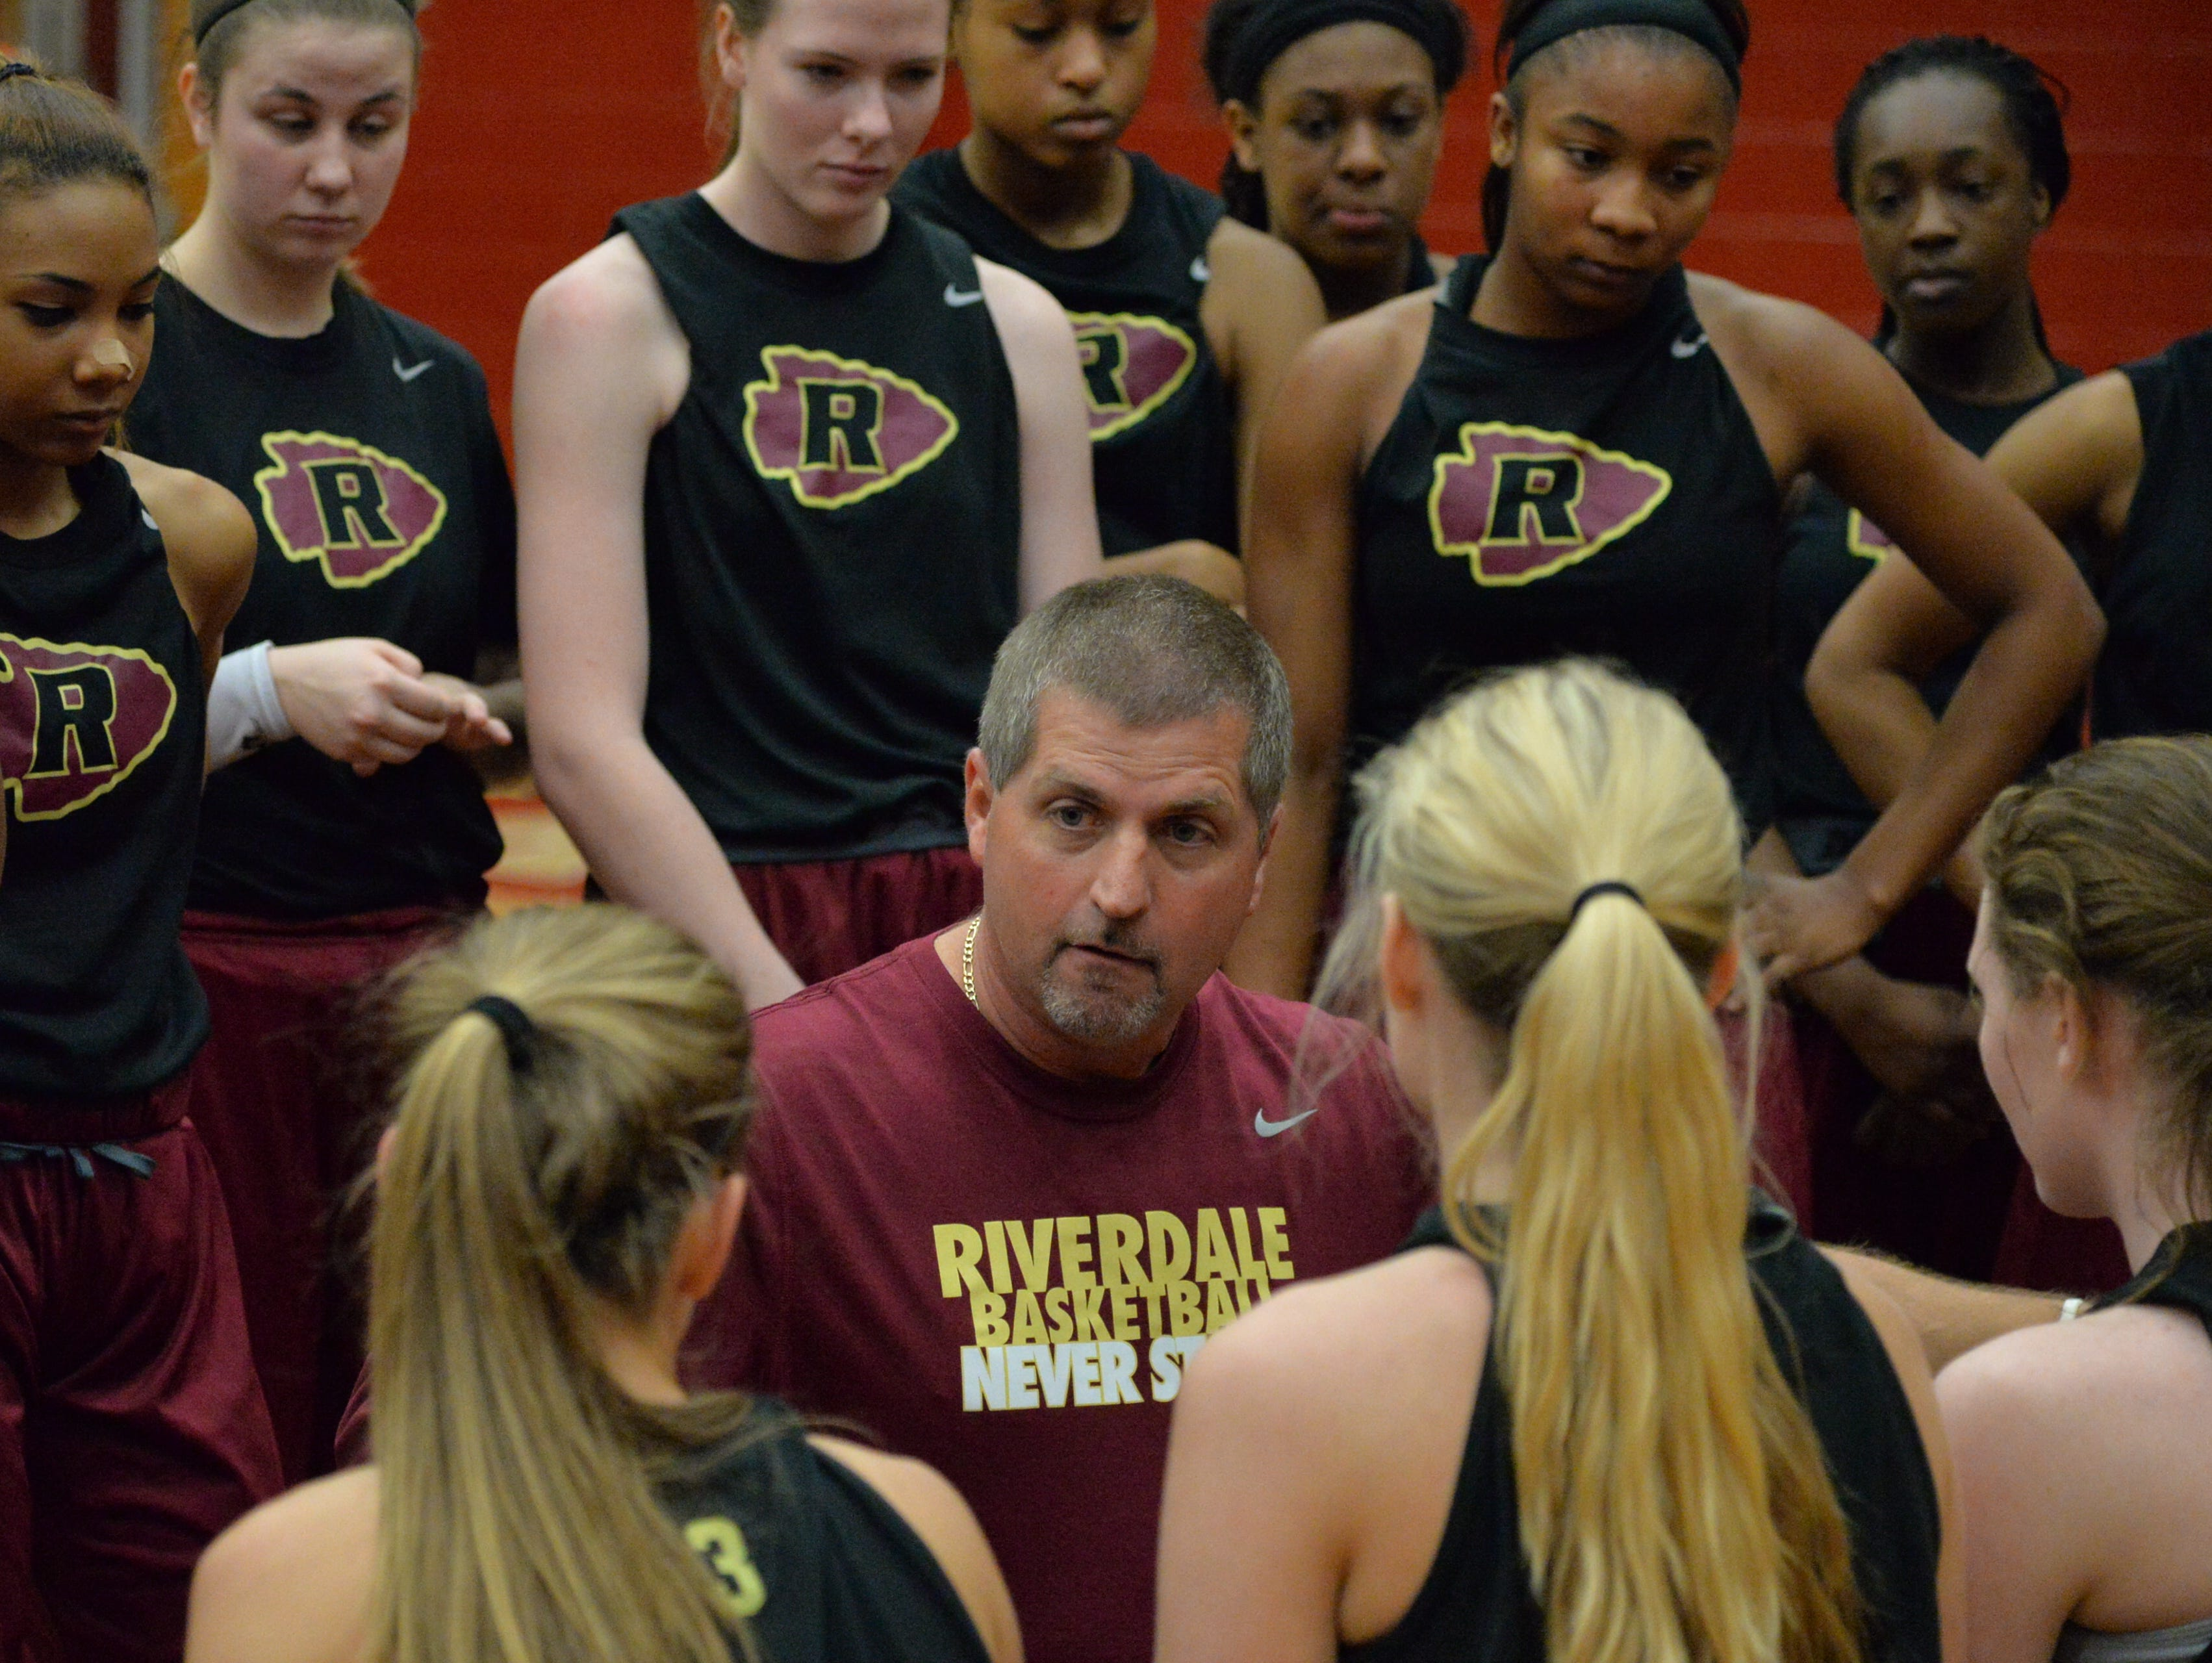 Blackman Riverdale and Smyrna were among the girls basketball teams that participated in a girls basketball playday at Riverdale on Saturday.